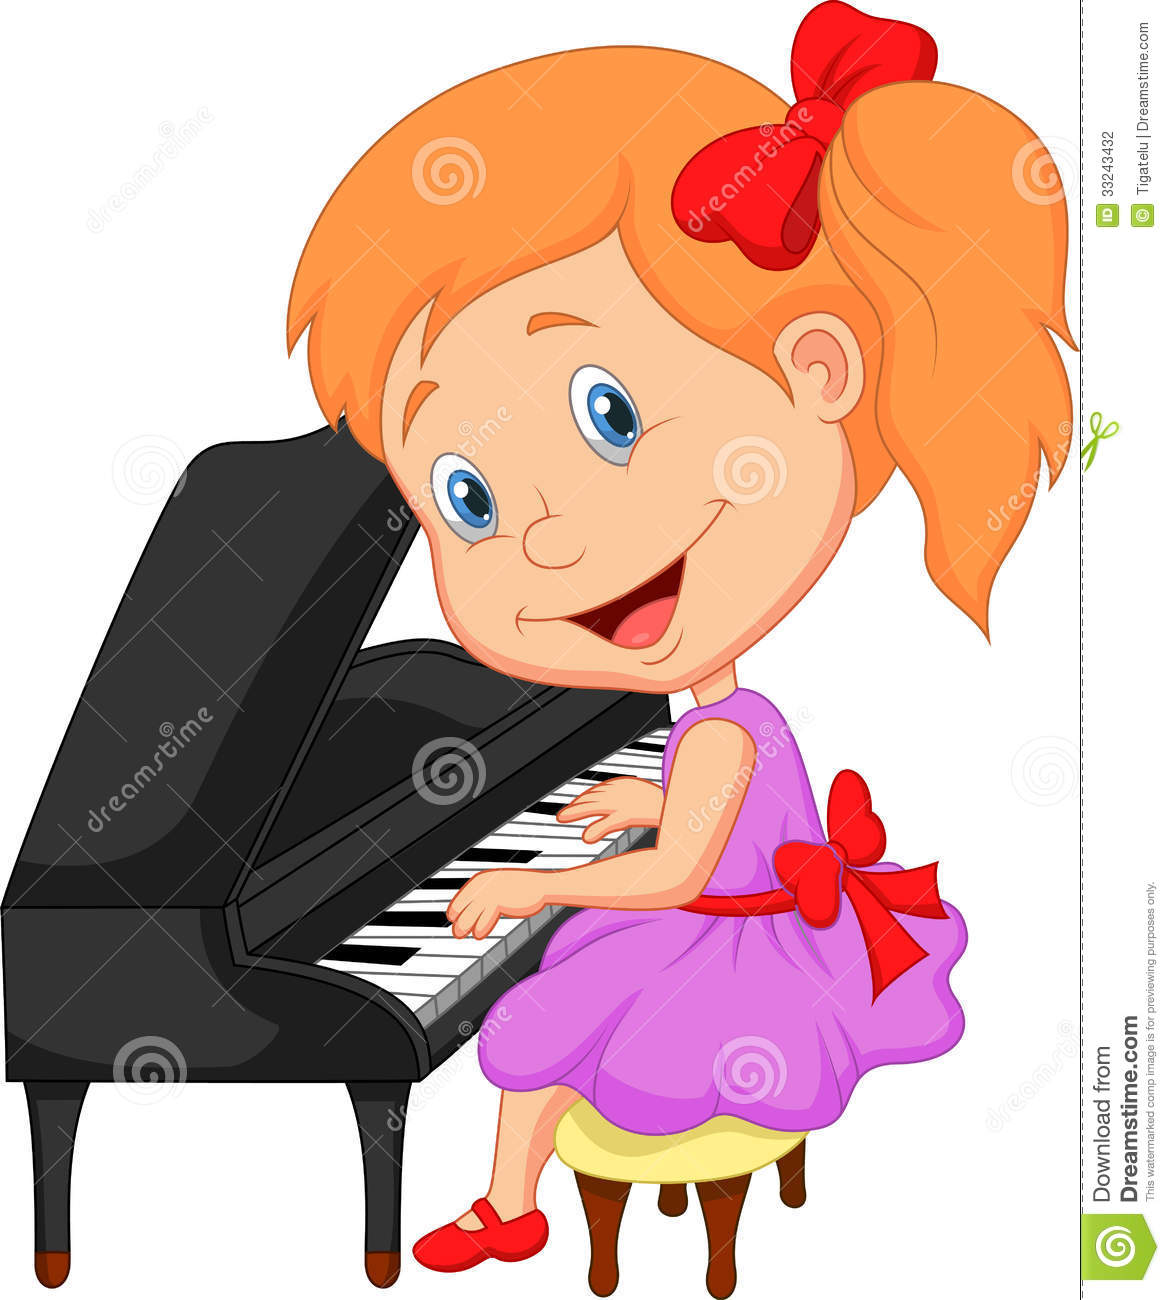 Congratulate, seems little girl nude playing piano